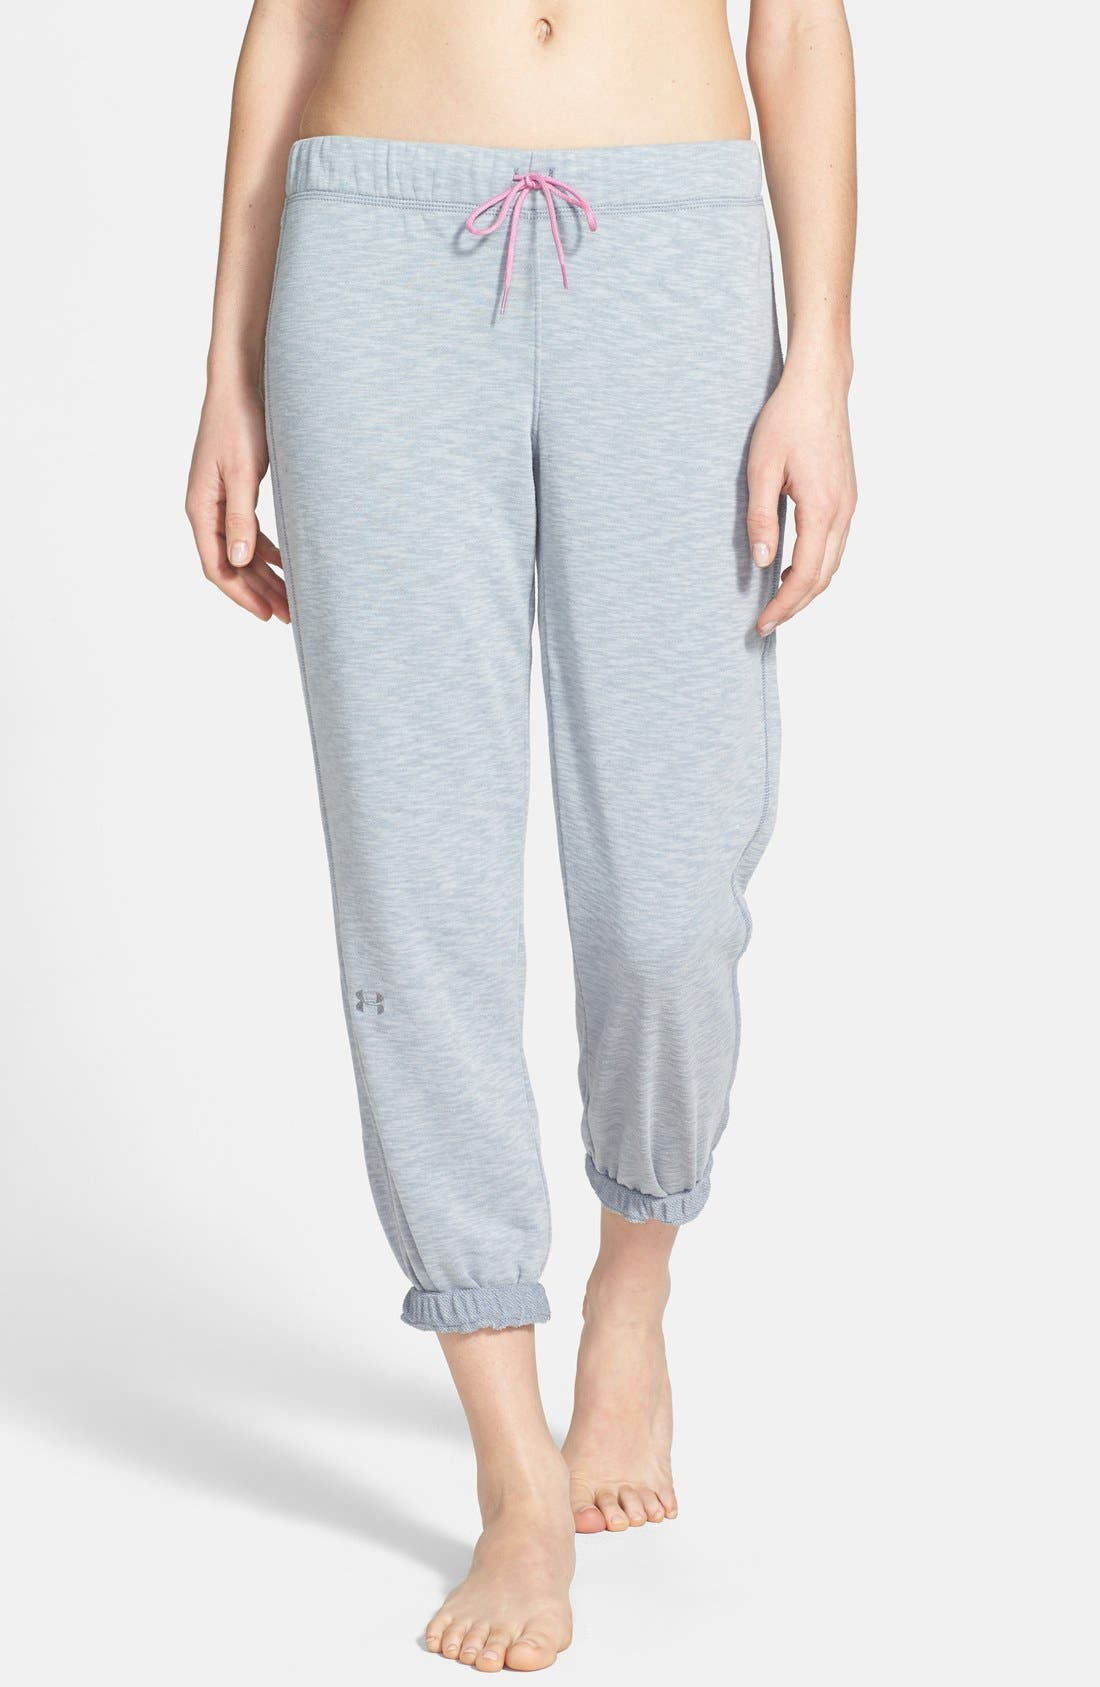 Alternate Image 1 Selected - Under Armour 'Rollick' French Terry Fleece Capri Sweatpants